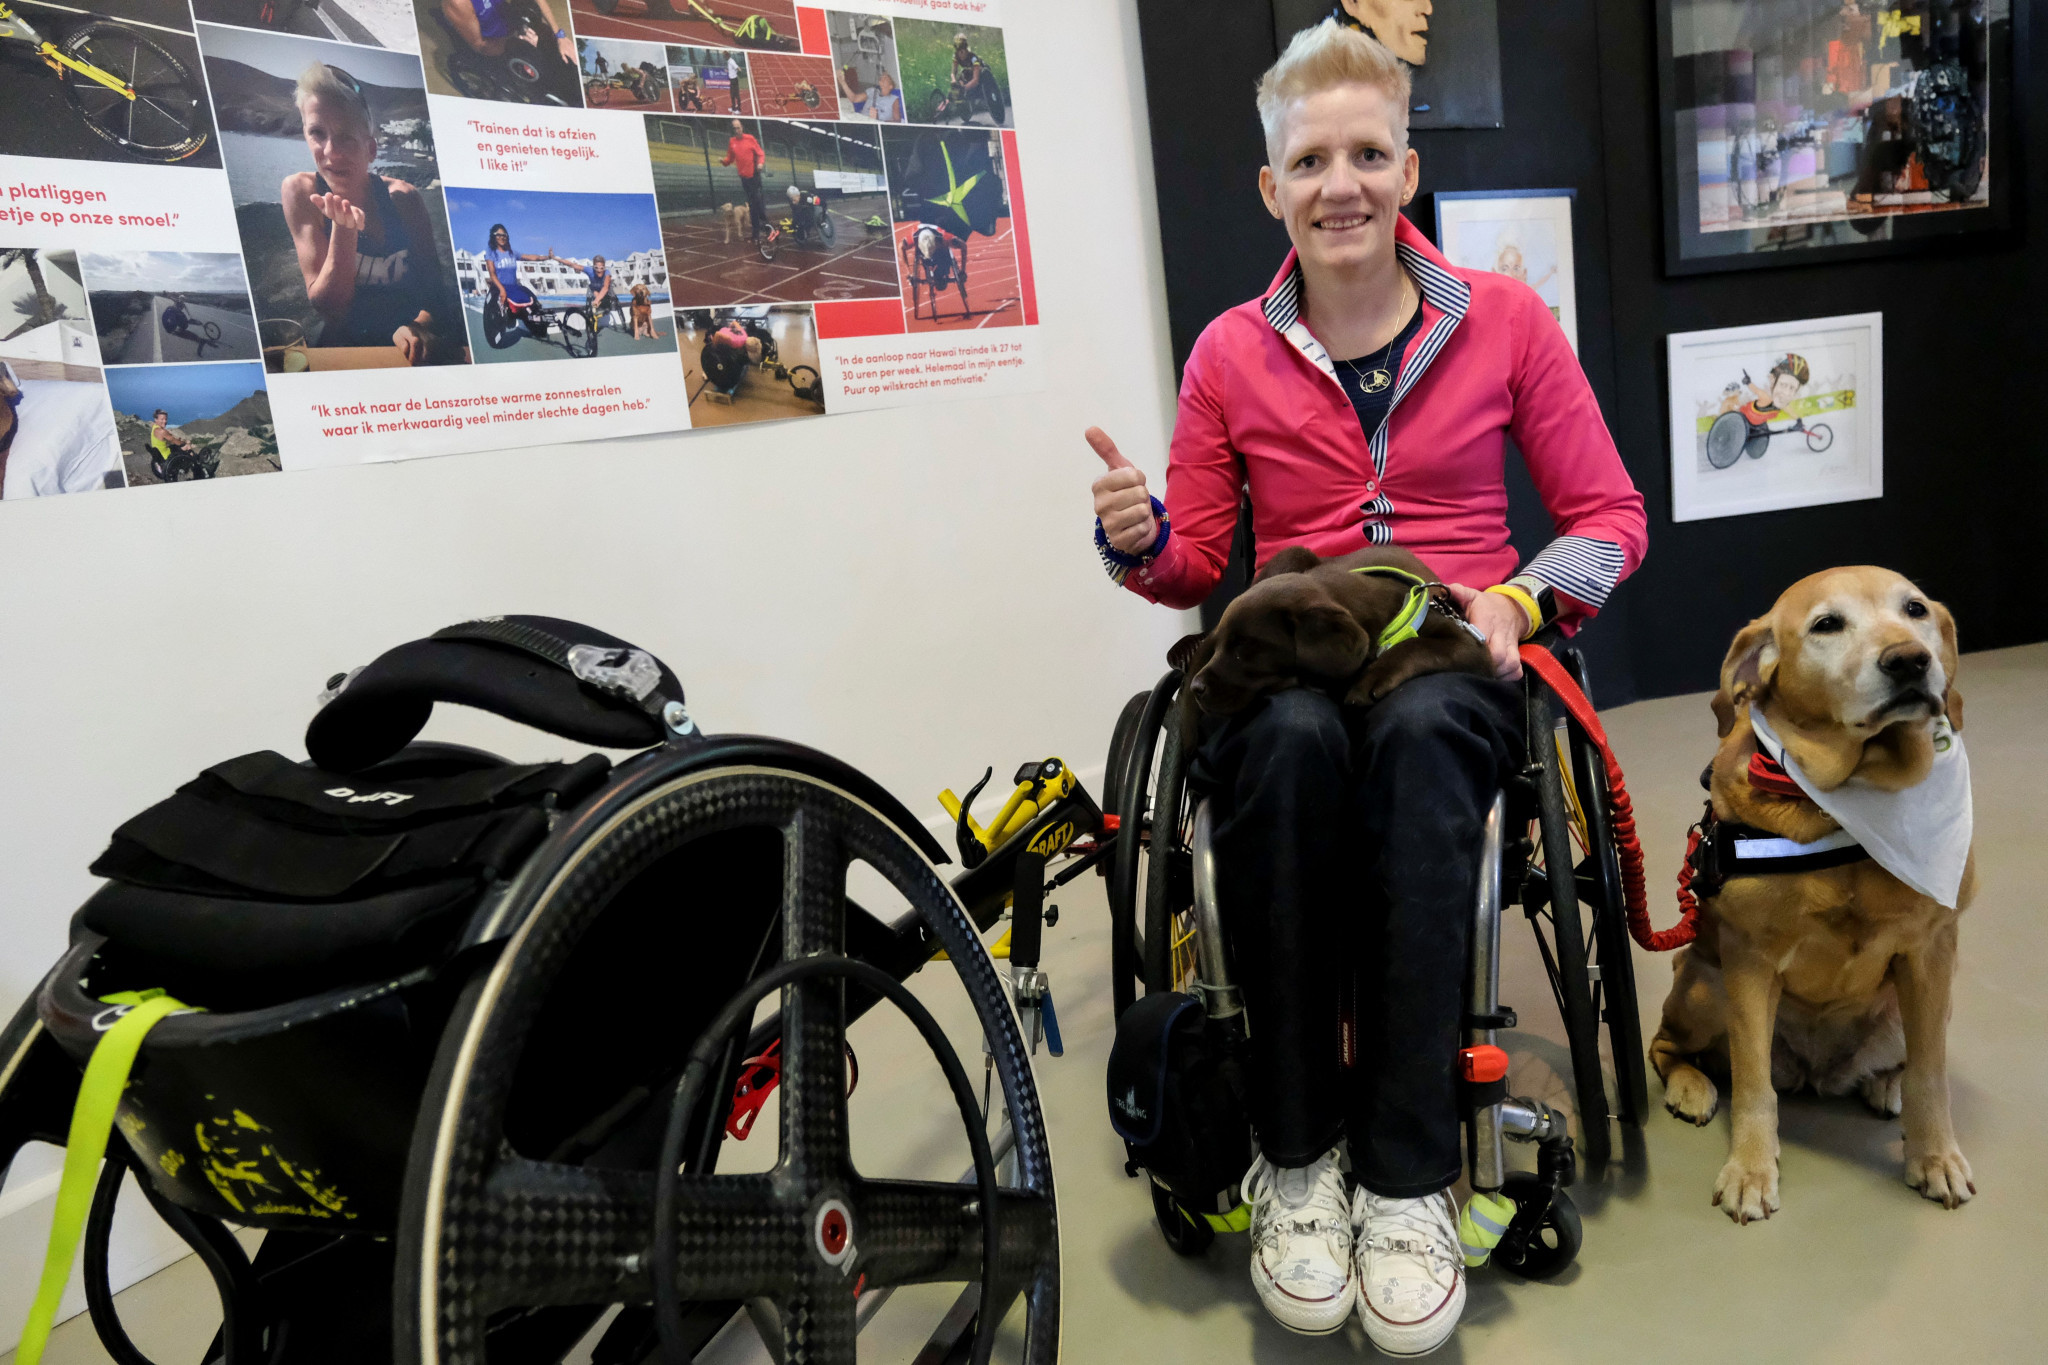 Belgian Marieke Vervoort decided to end her life through euthanasia after a long-running battle with tetraplegia ©Getty Images